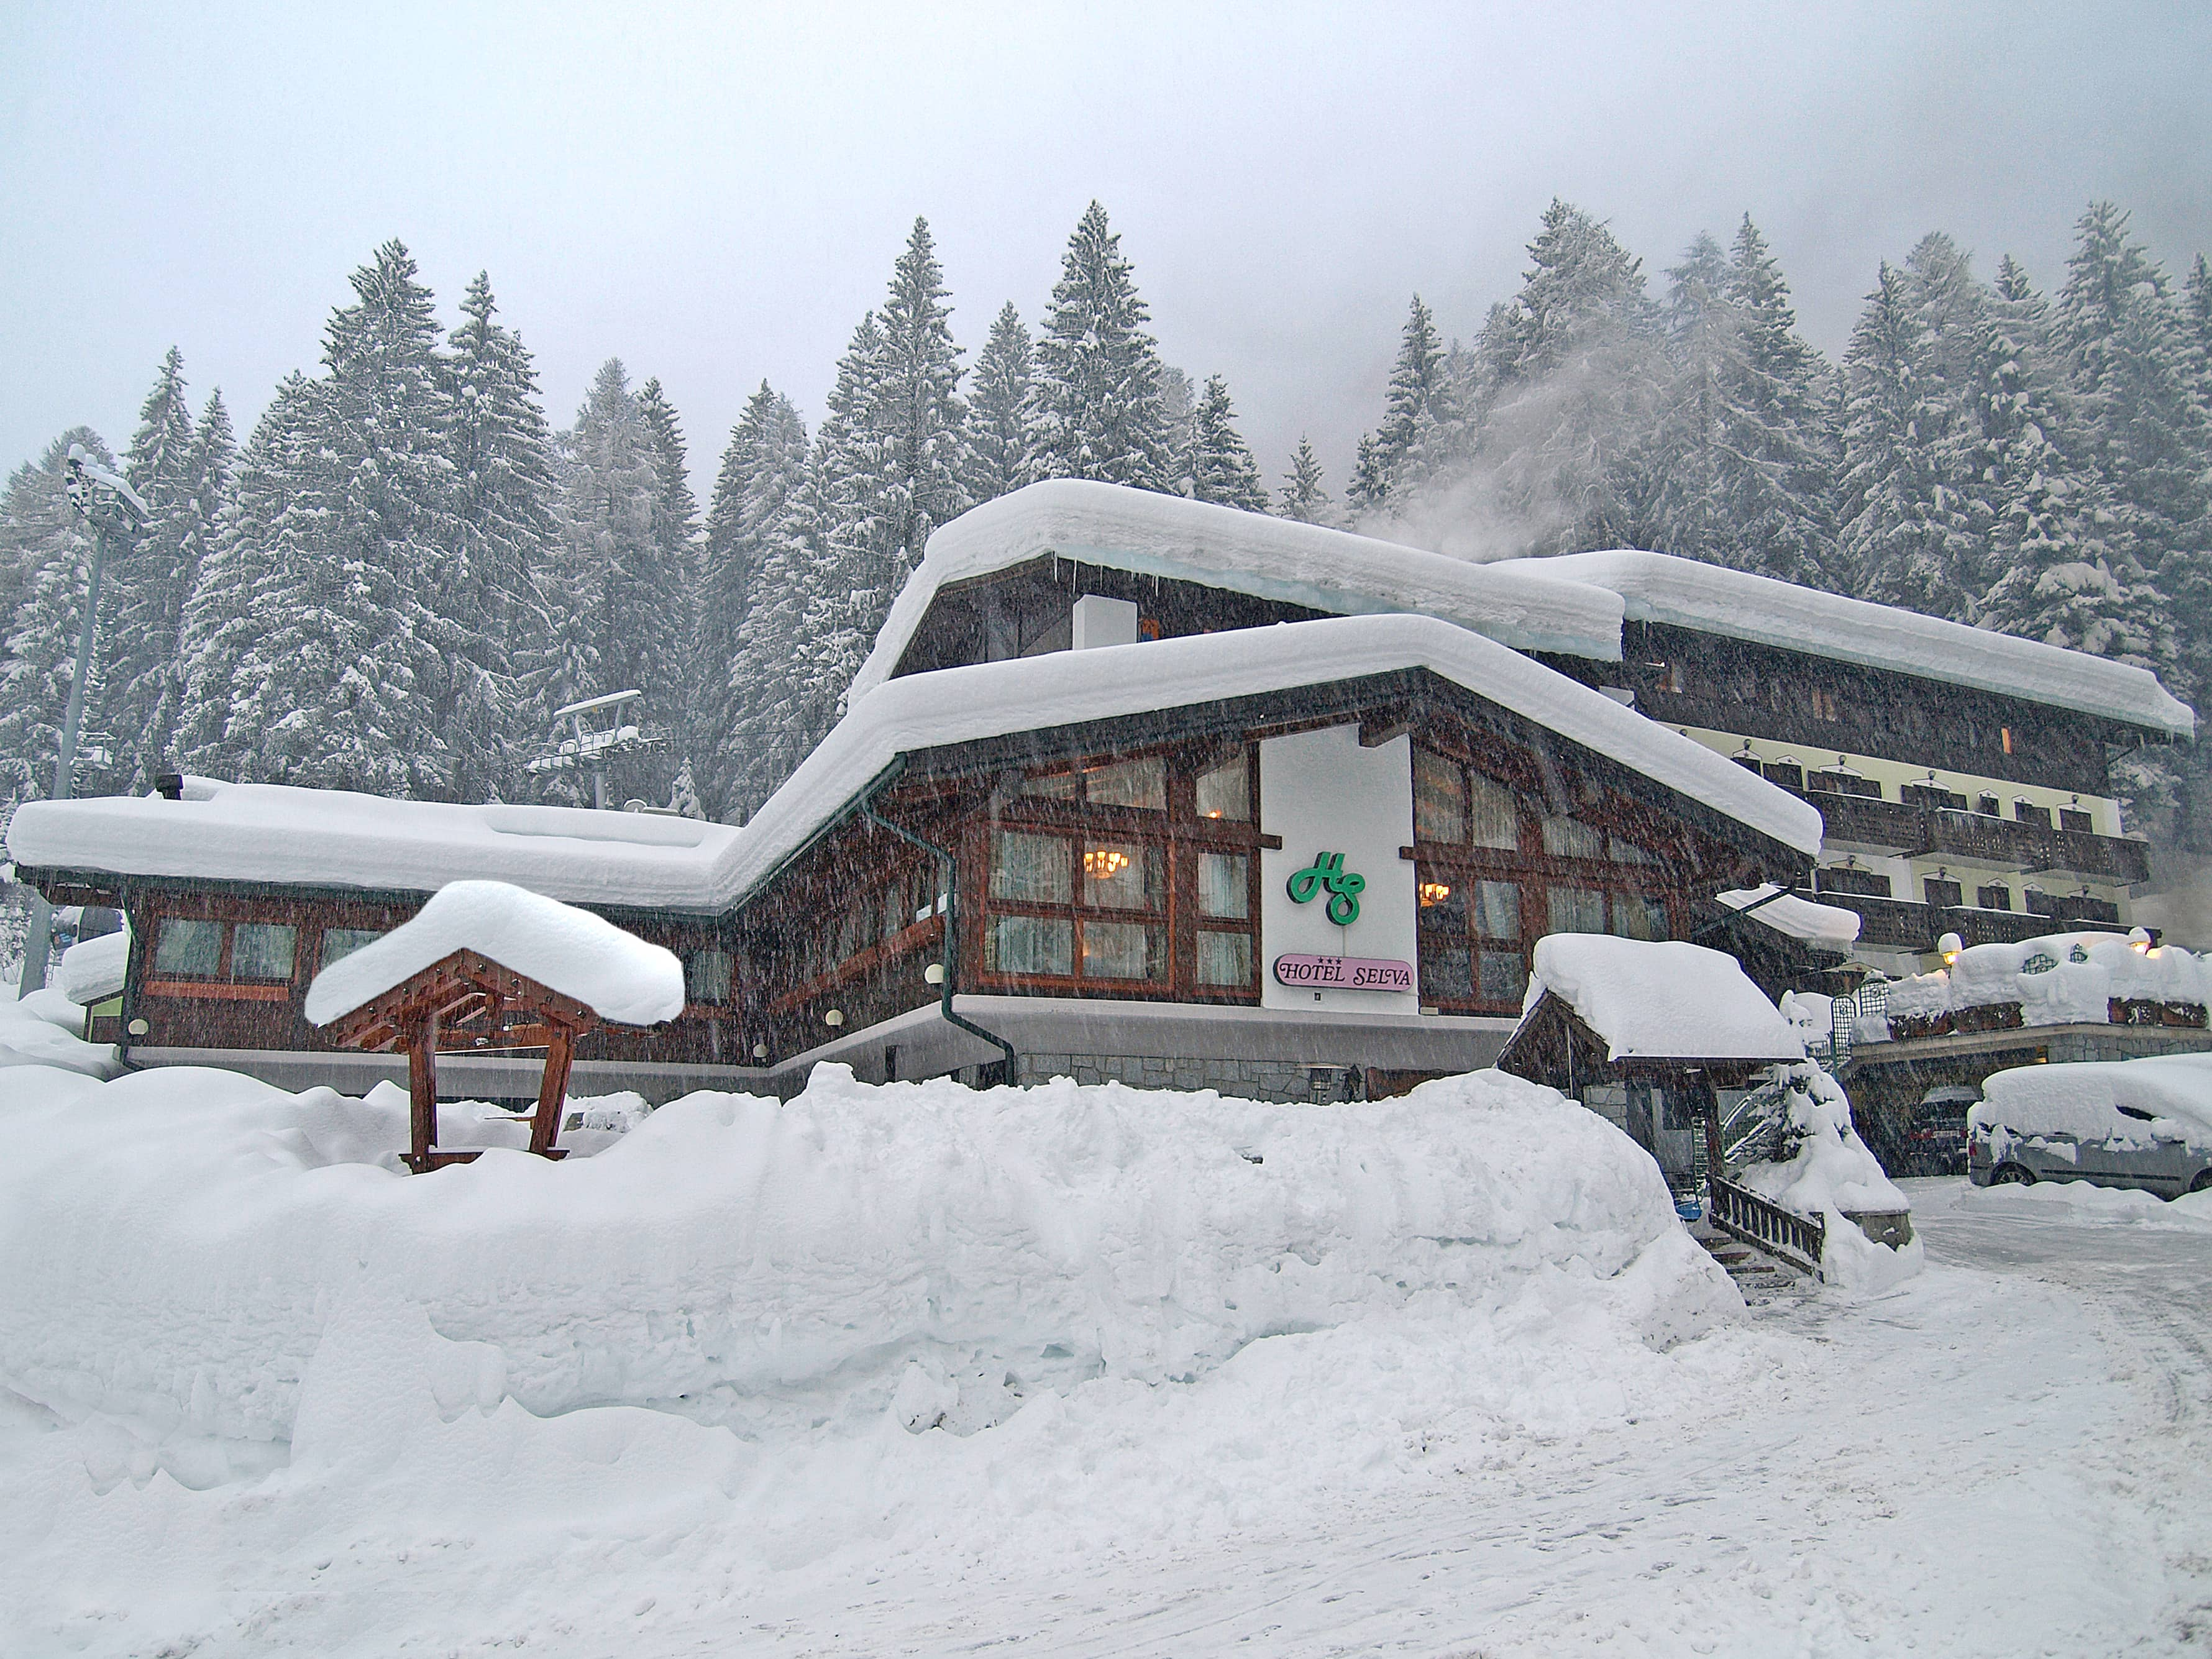 Val di Sole skipass included: Hotel Selva 3*** HB 3